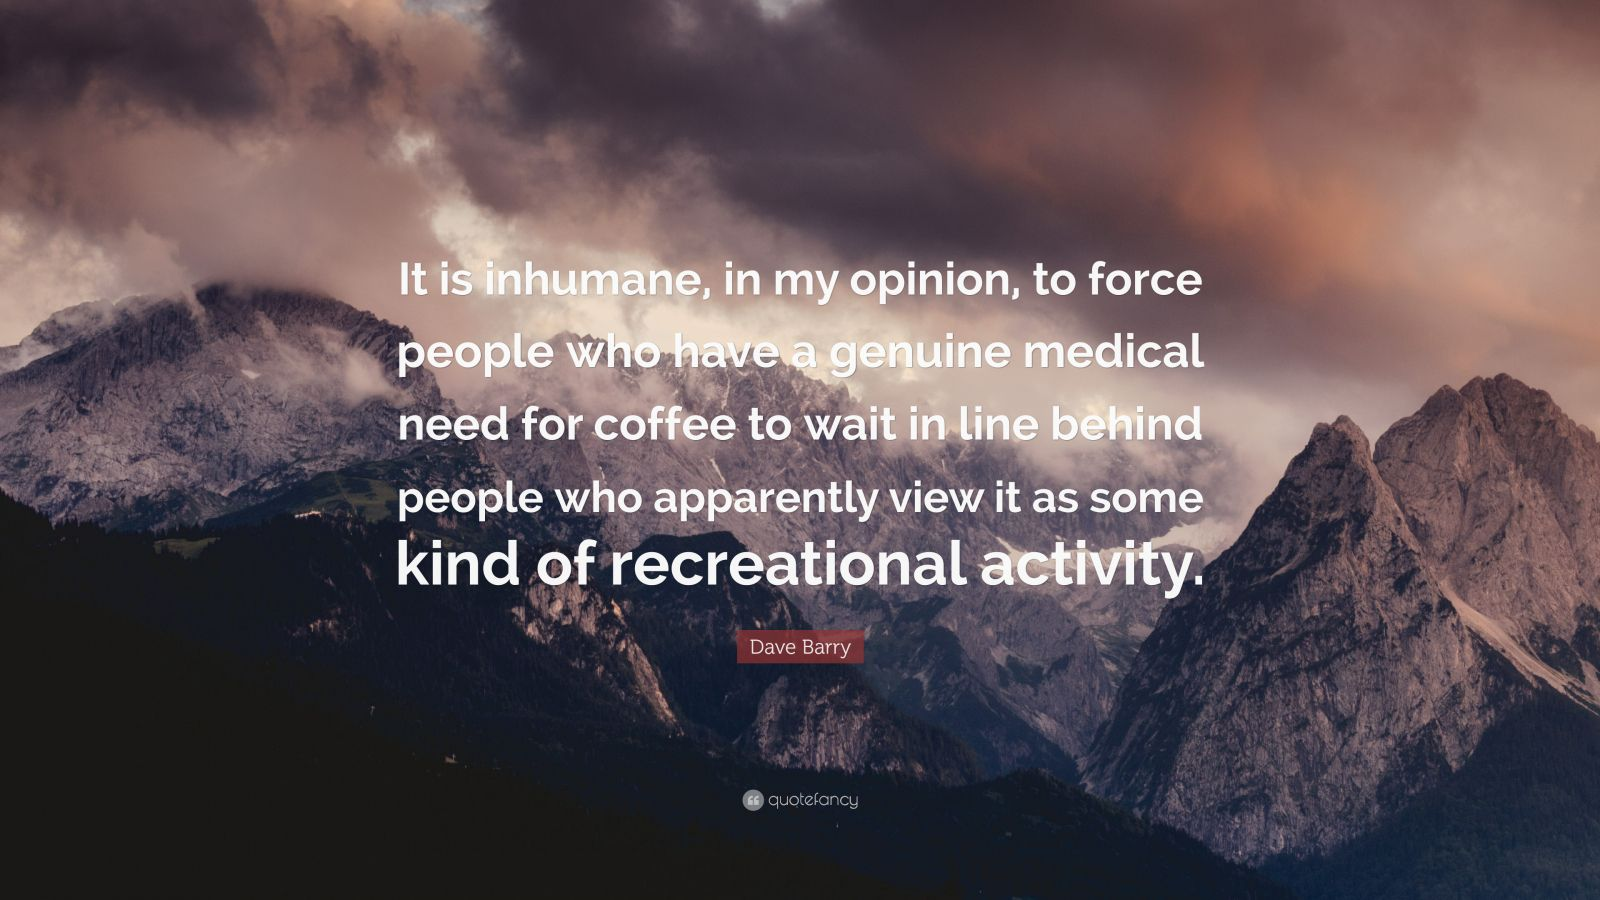 """Dave Barry Quote: """"It is inhumane, in my opinion, to force people who have a genuine medical need for coffee to wait in line behind people who apparently view it as some kind of recreational activity."""""""